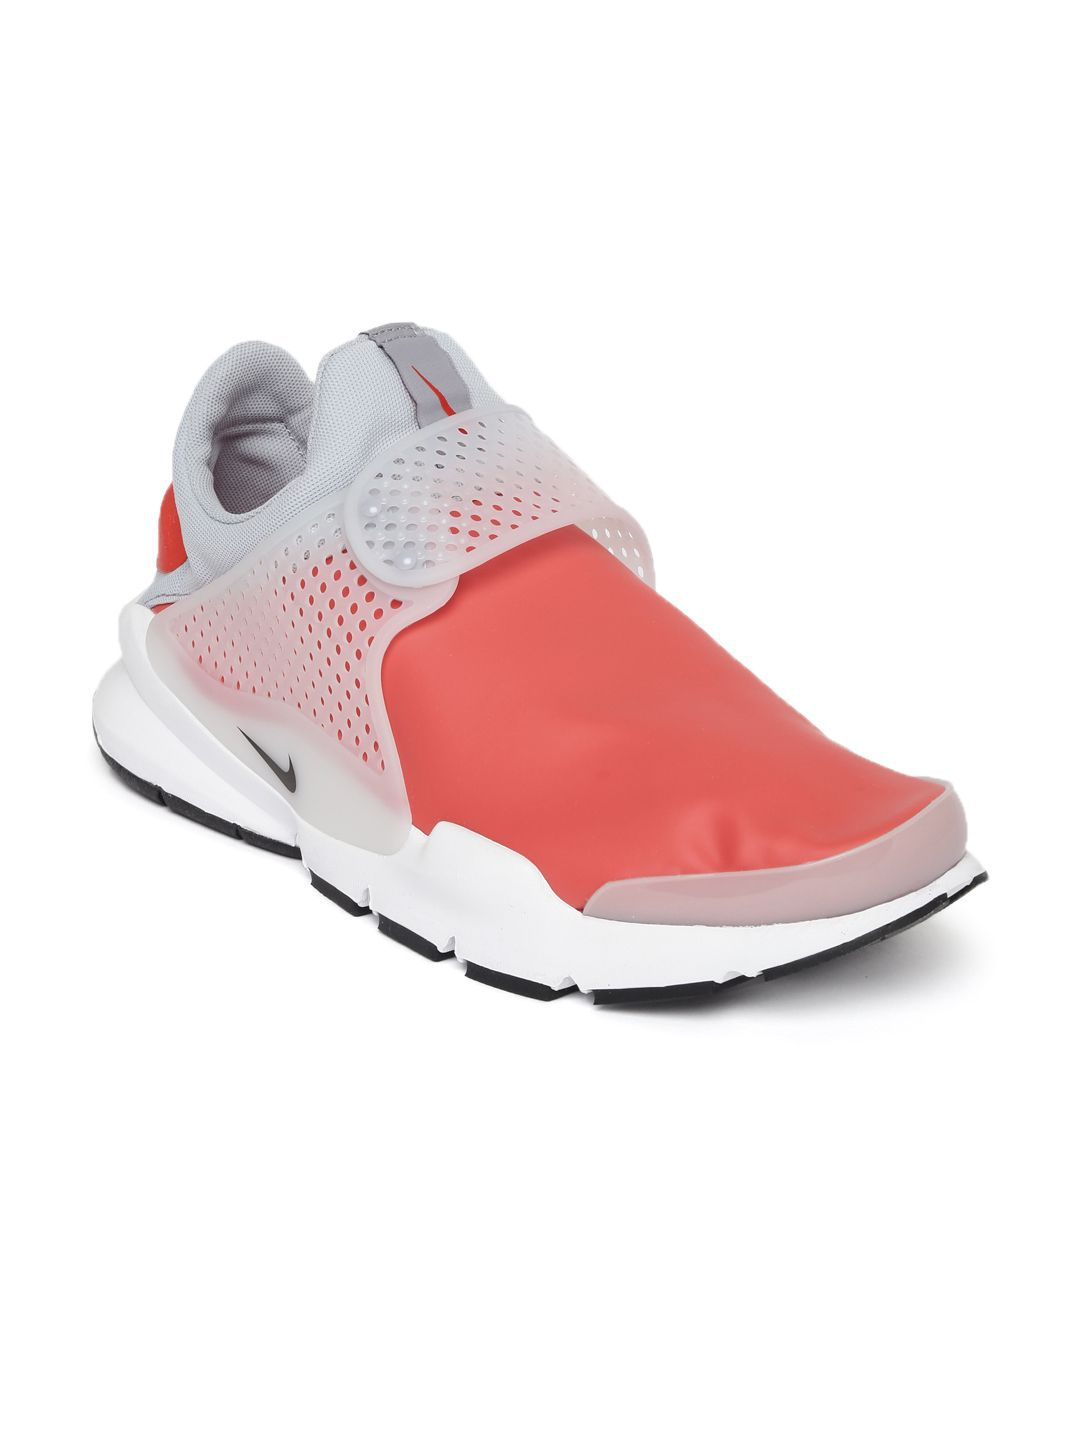 new arrival 21868 94c87 Nike SOCK DART SE Sneakers Pink Casual Shoes